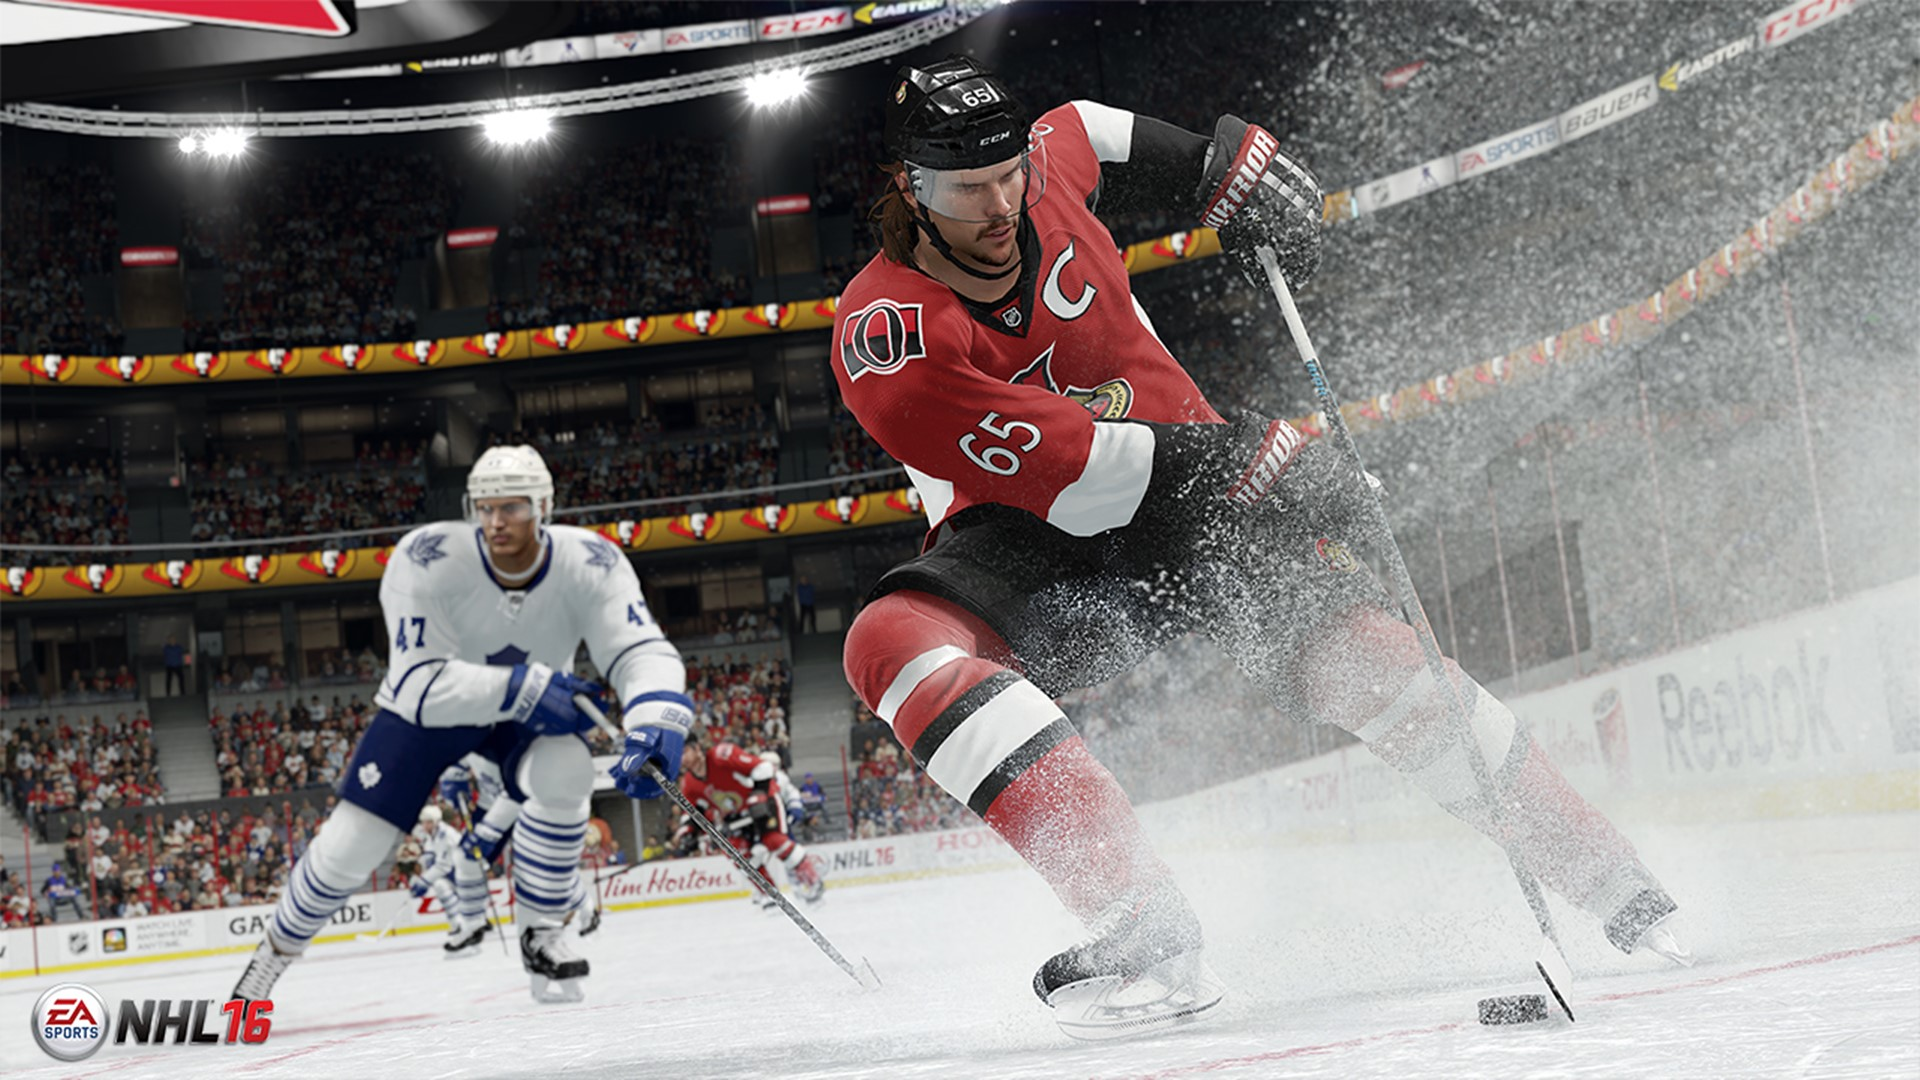 nhl16-ott-tor-karlsson-puckpickup-3-edit_1280x720